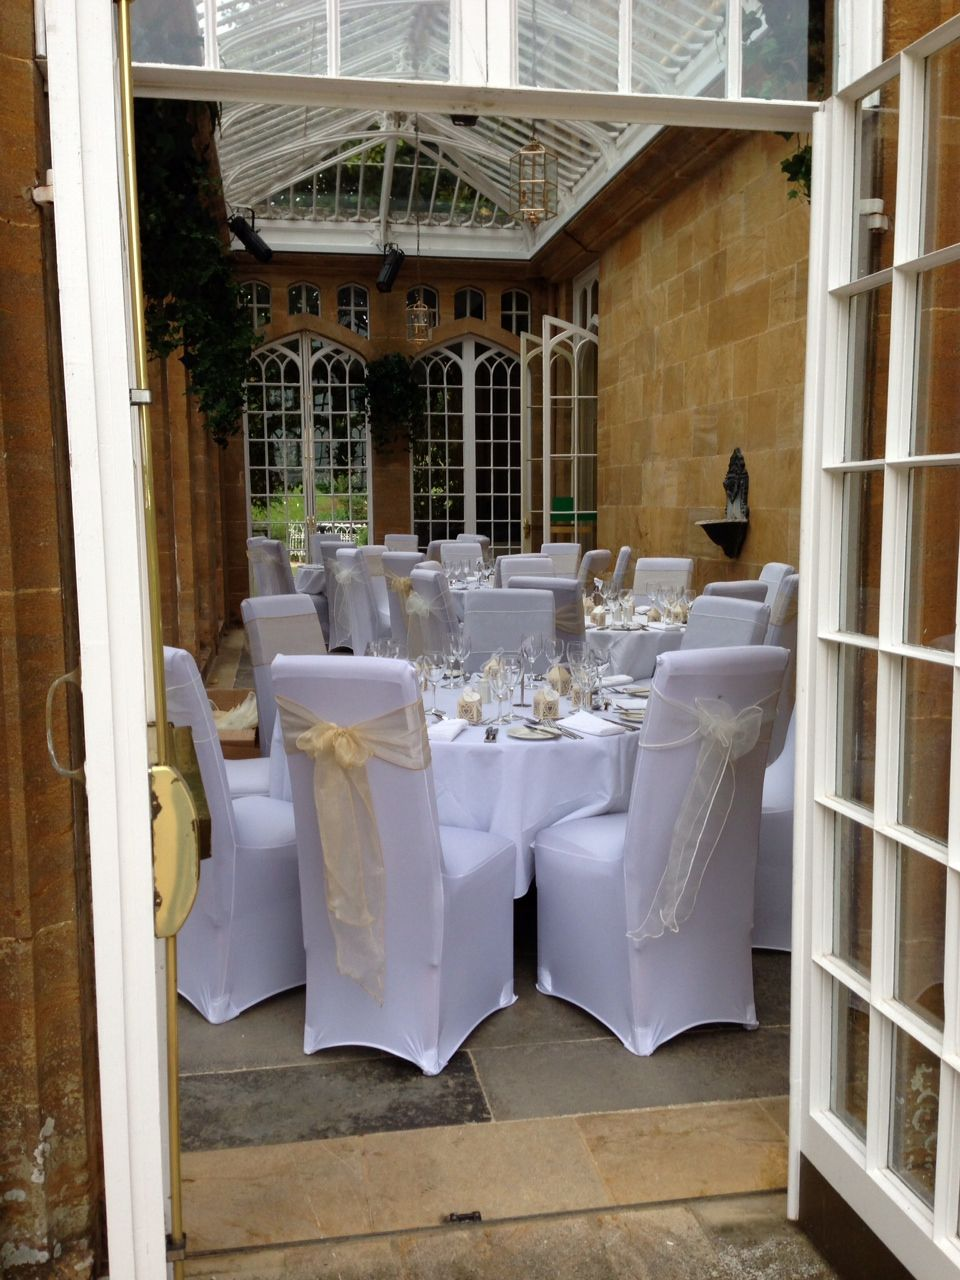 Chair Covers Yeovil Wedding Or Not At Dillington House Ilmister Somerset Decor